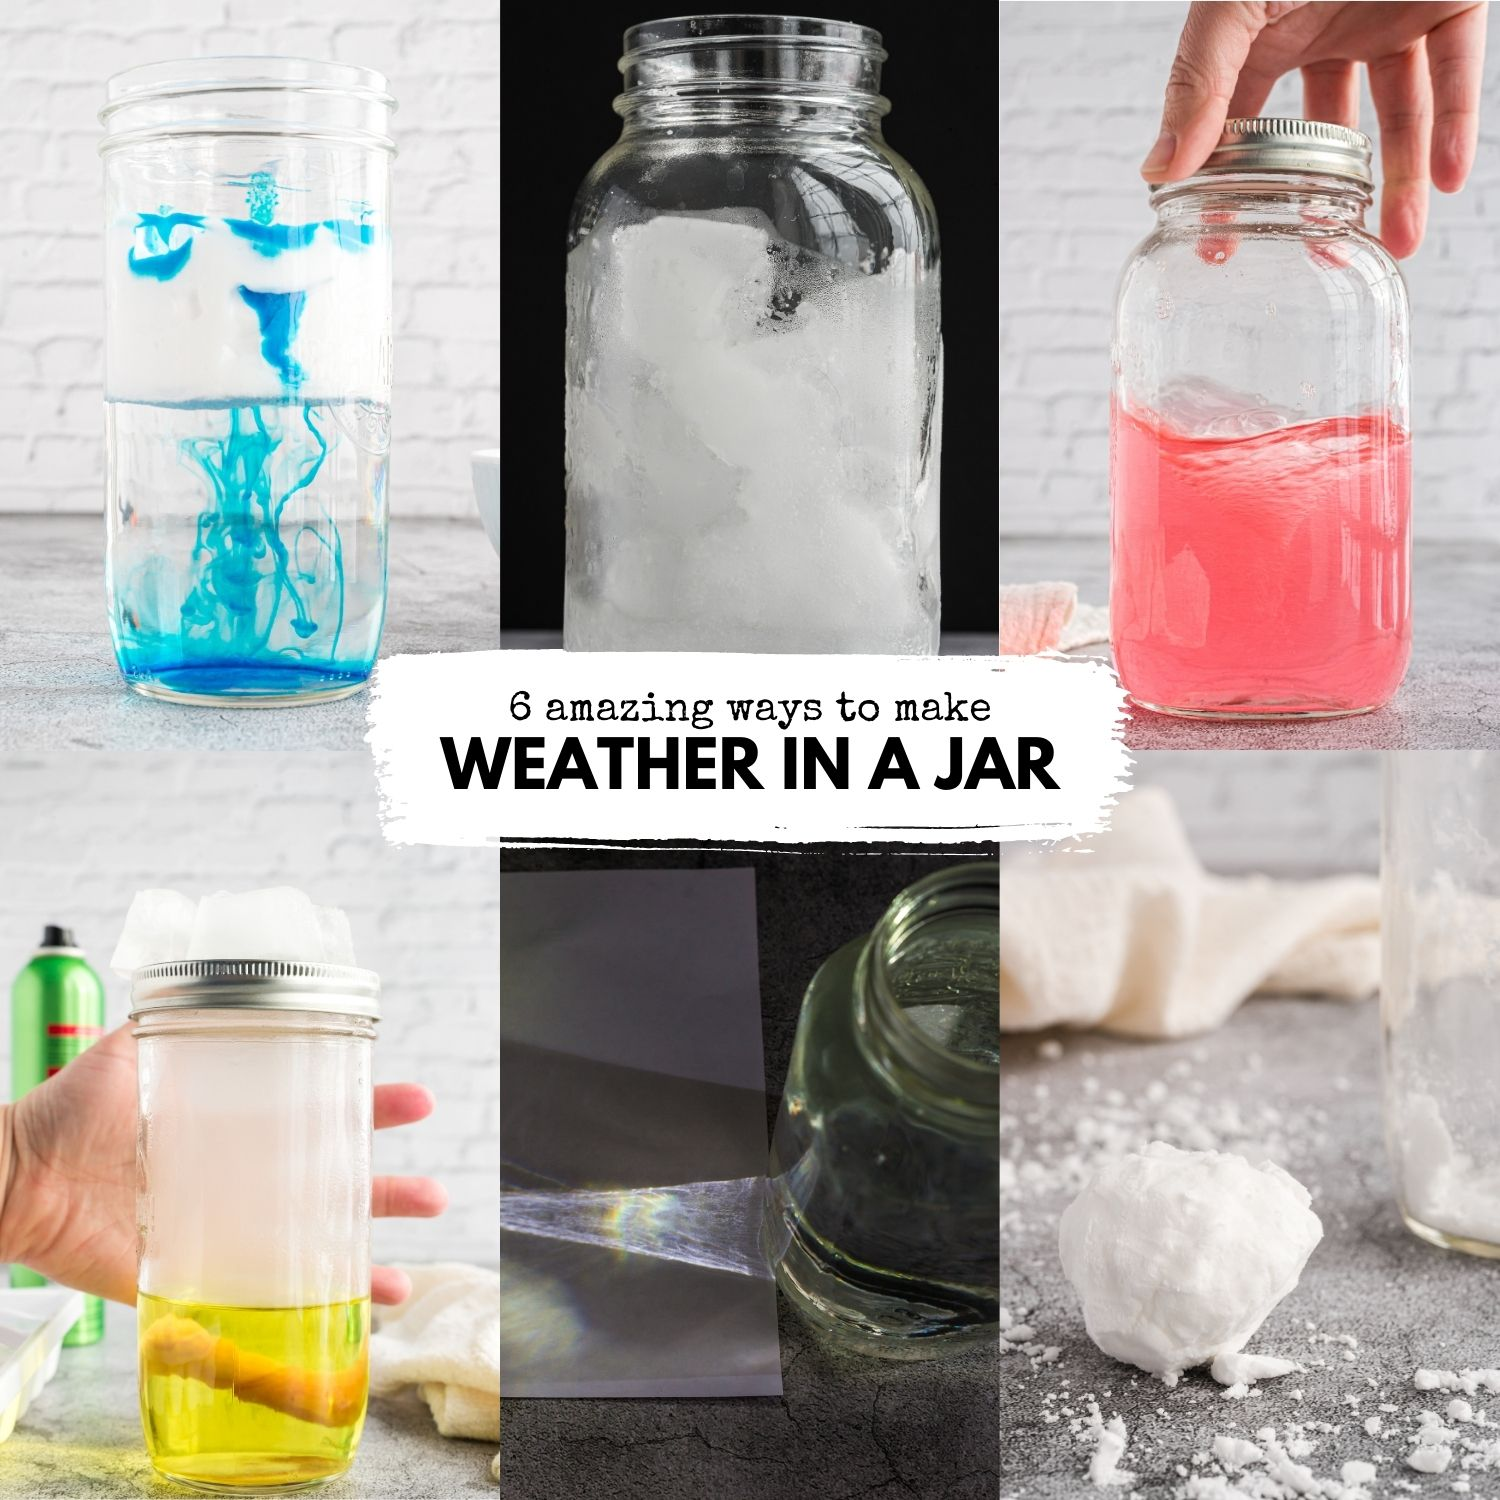 6 Amazing Ways to Make Weather in a Jar